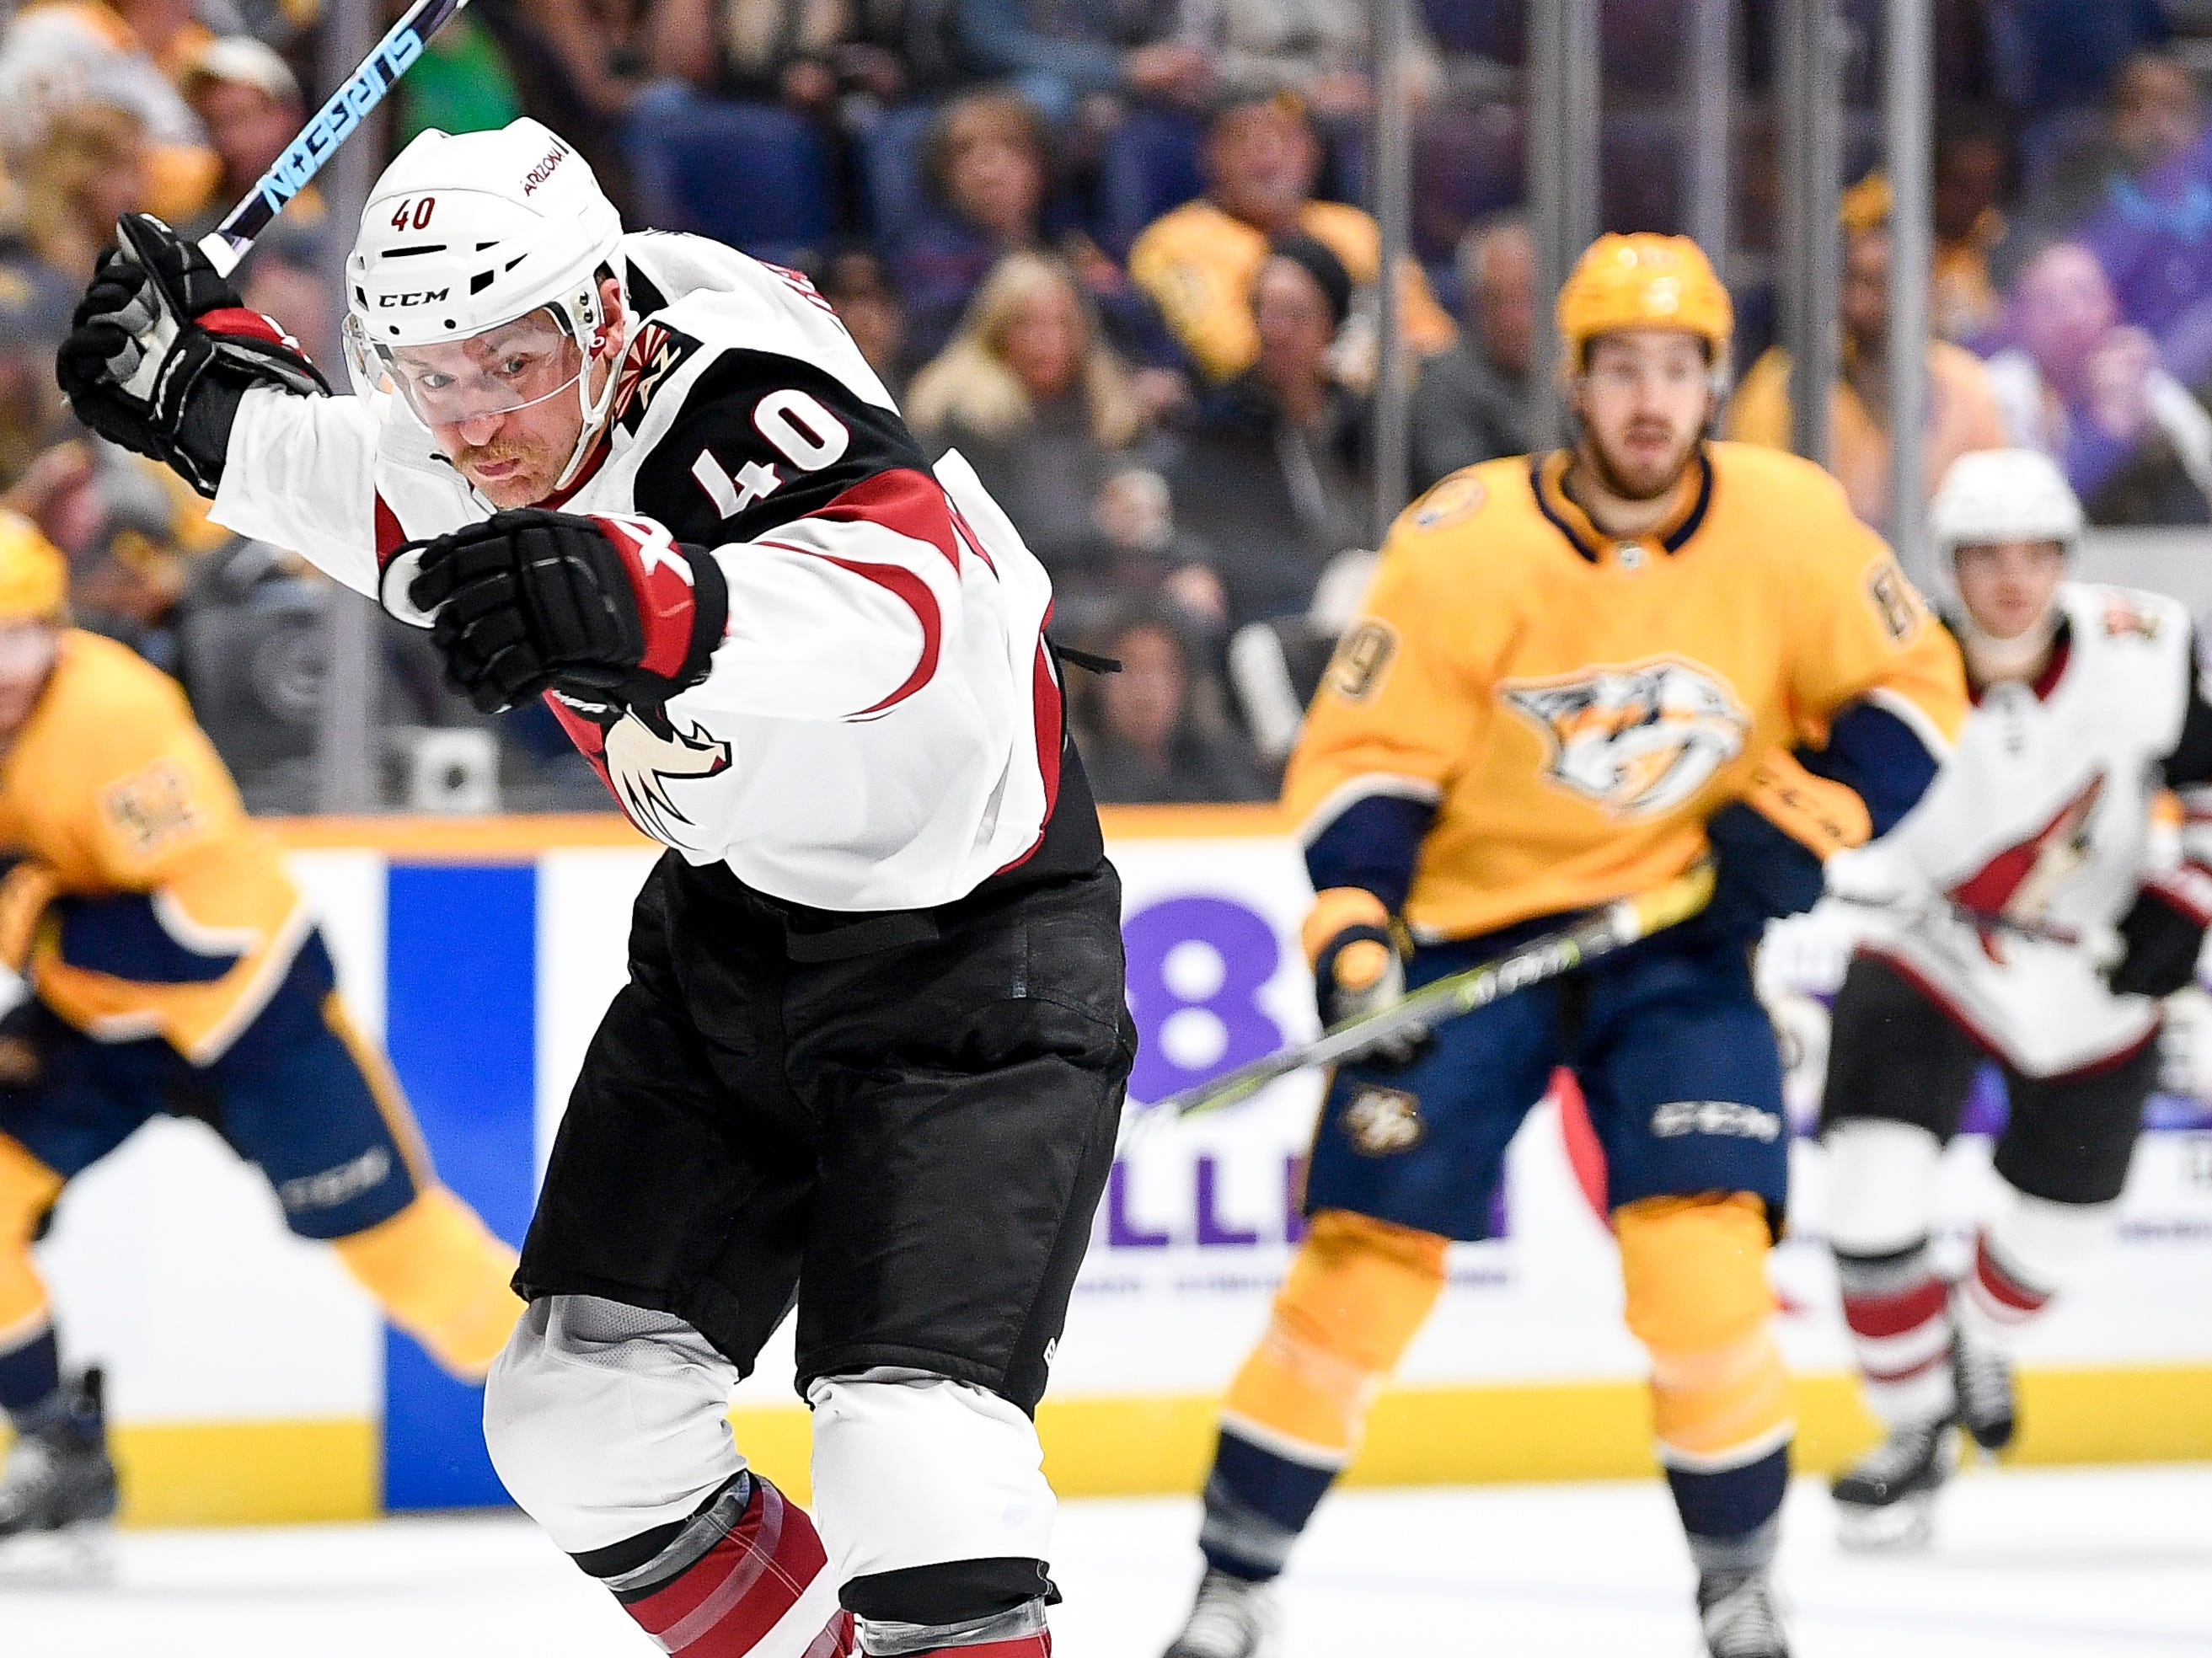 Arizona Coyotes right wing Michael Grabner (40) chases the puck during the second period against the Nashville Predators at Bridgestone Arena in Nashville, Tenn., Thursday, Nov. 29, 2018.